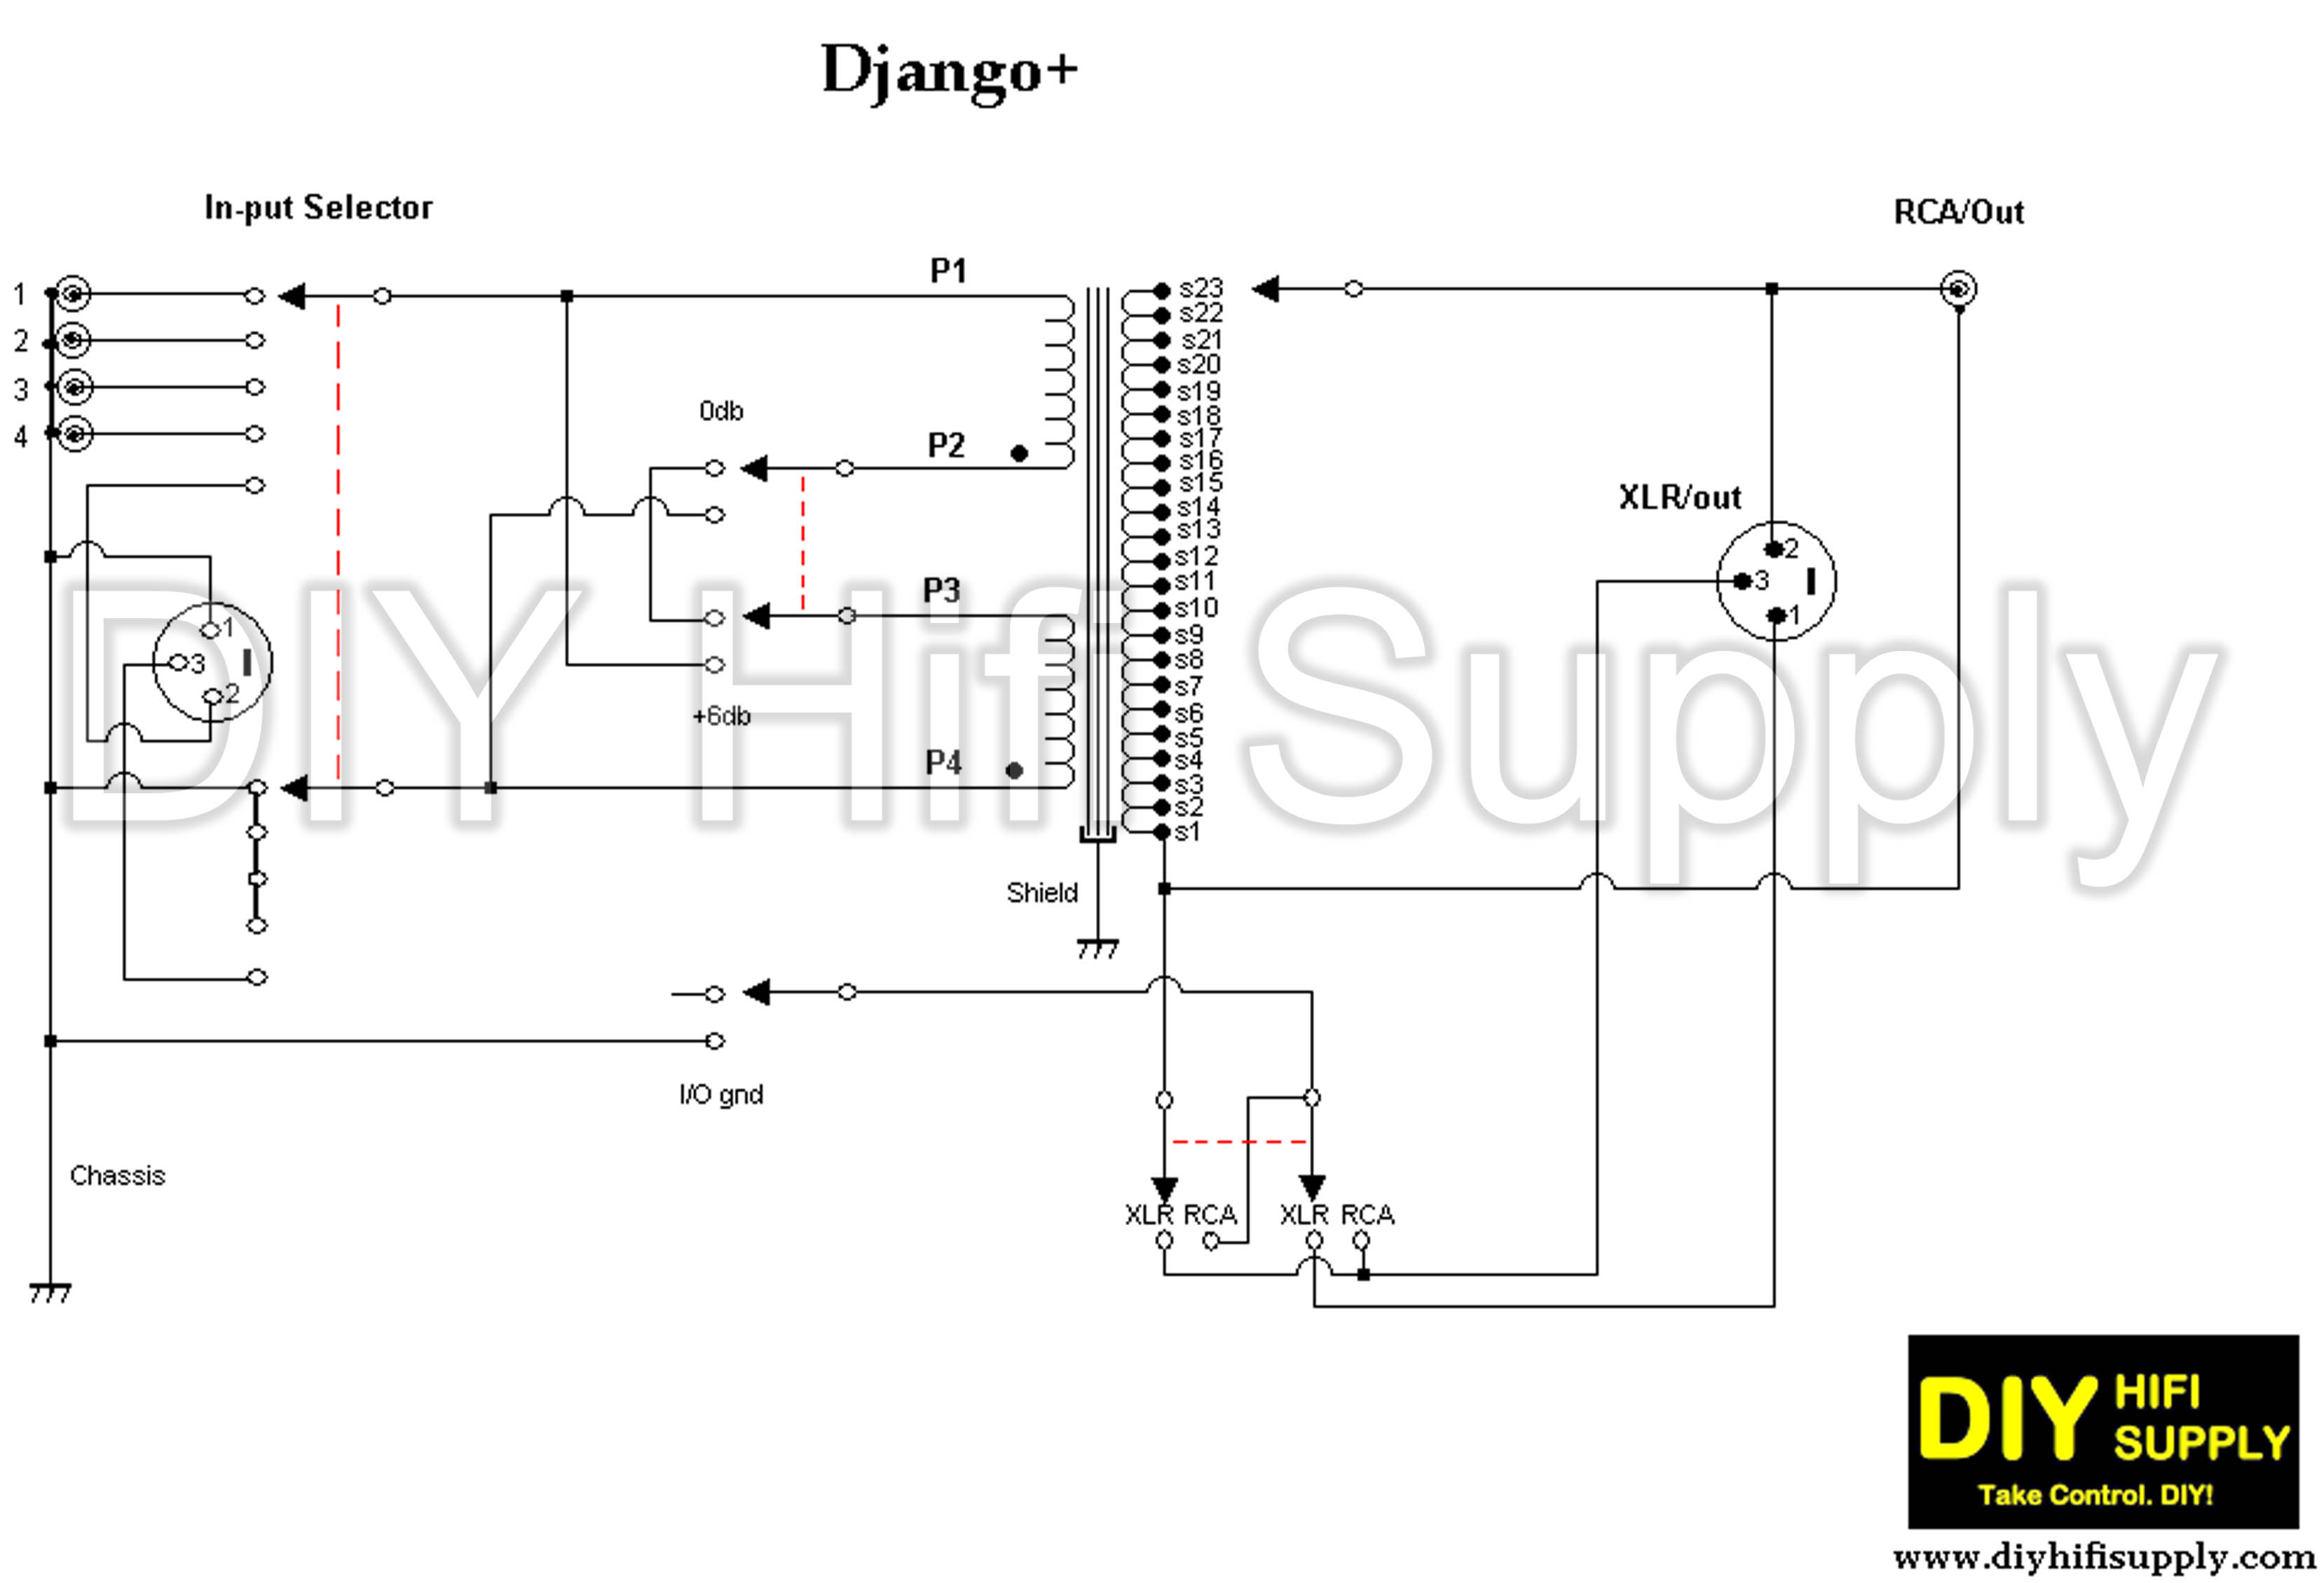 gsxr 600 wiring diagram pdf with Switchable Pre  Wiring Harness Diagram on Switchable Pre  Wiring Harness Diagram additionally Showthread in addition Hondata S300 Wiring Harness Diagram as well P8275727s additionally Hayabusa Engine Diagram.